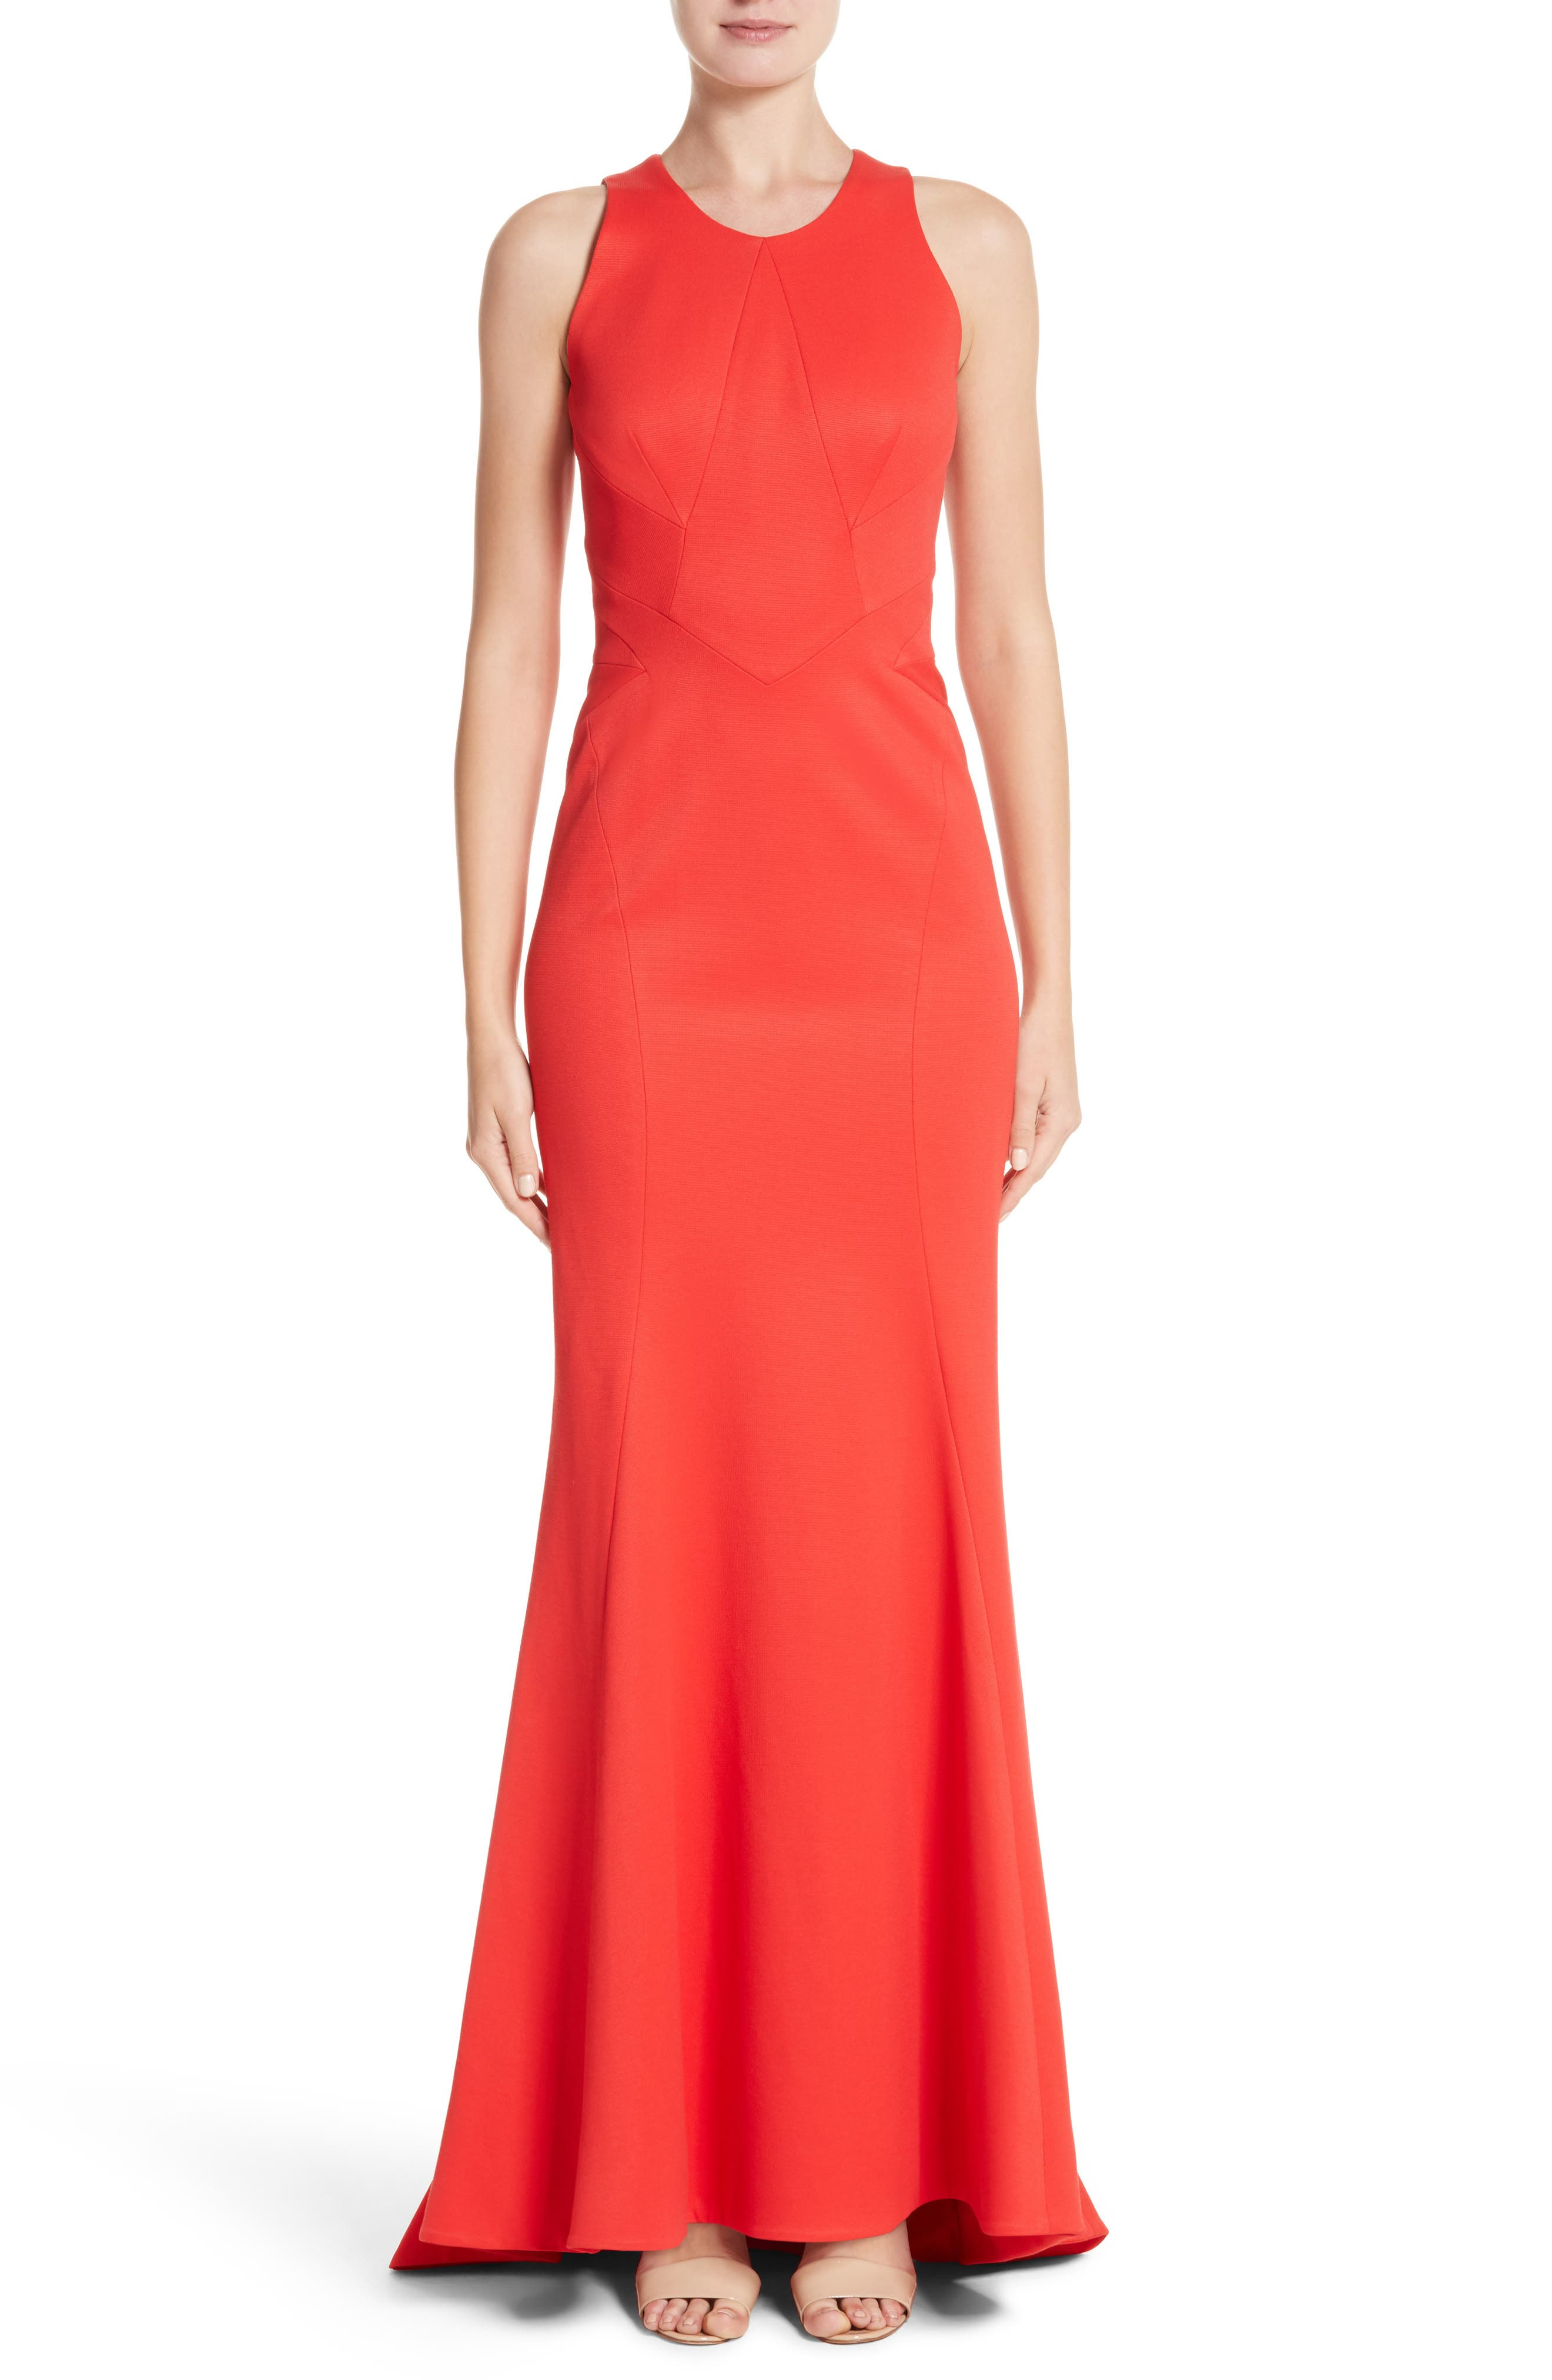 Main Image - Zac Posen Structured Knit Trumpet Gown